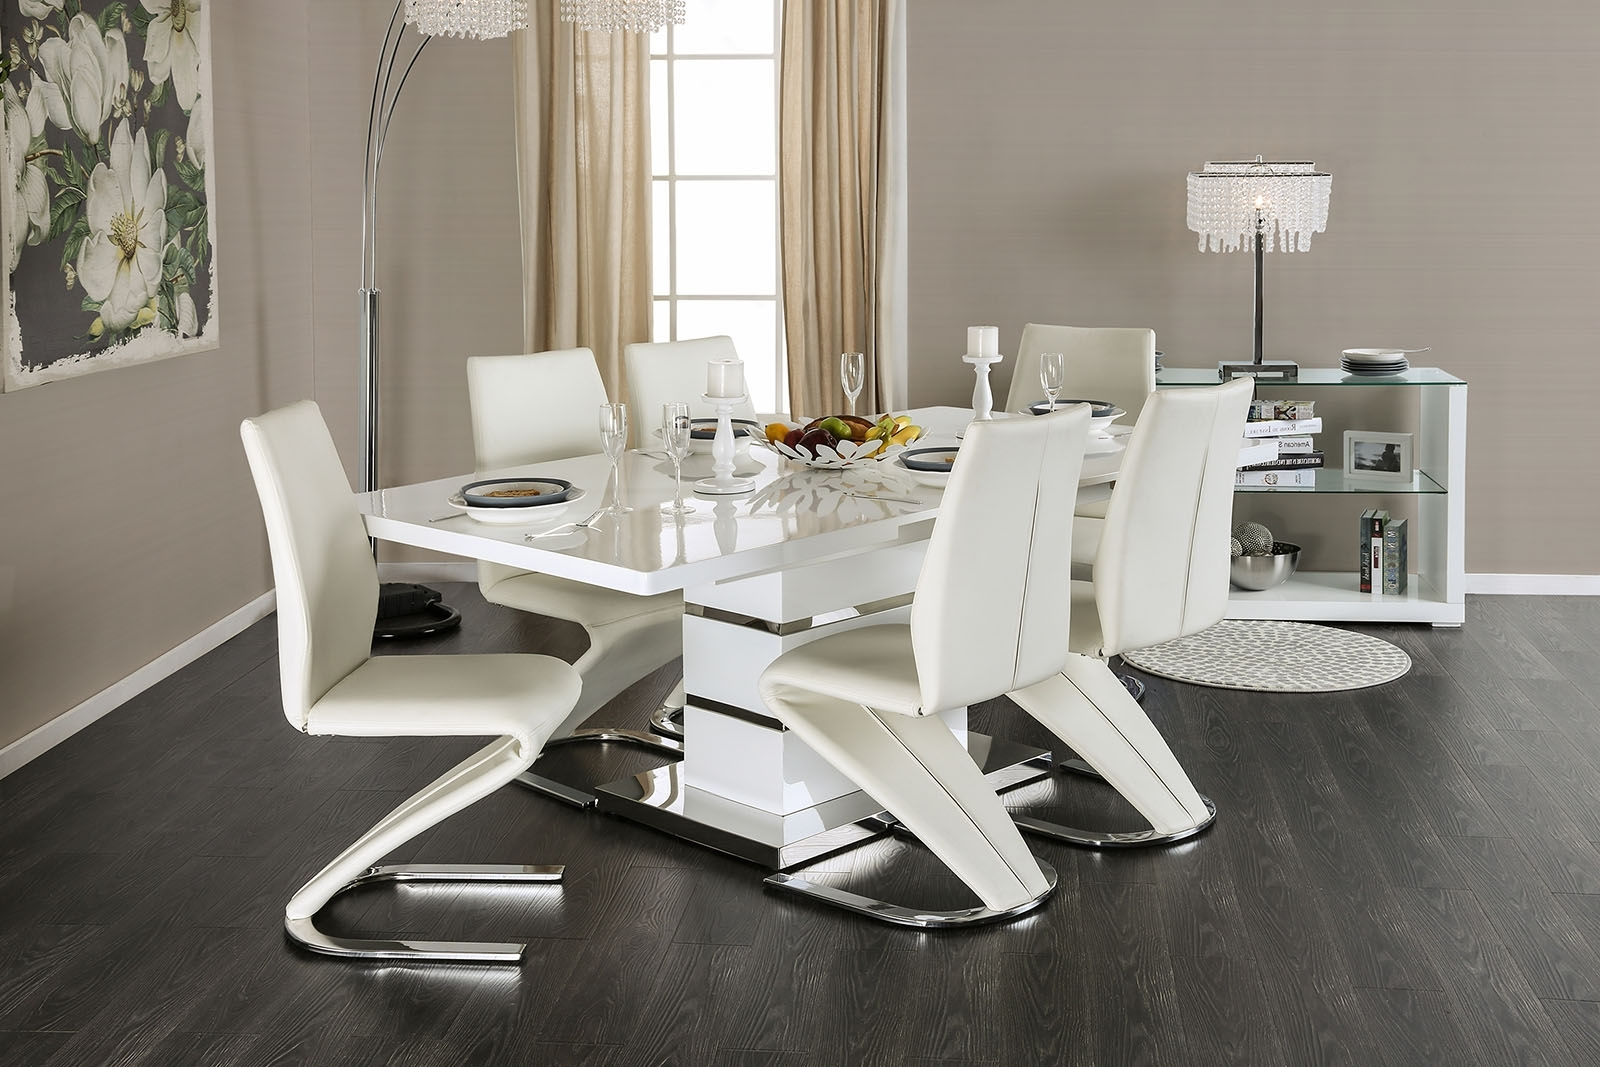 Widely Used Midvale Contemporary Style White High Gloss Lacquer Finish & Chrome In High Gloss White Dining Chairs (View 20 of 25)